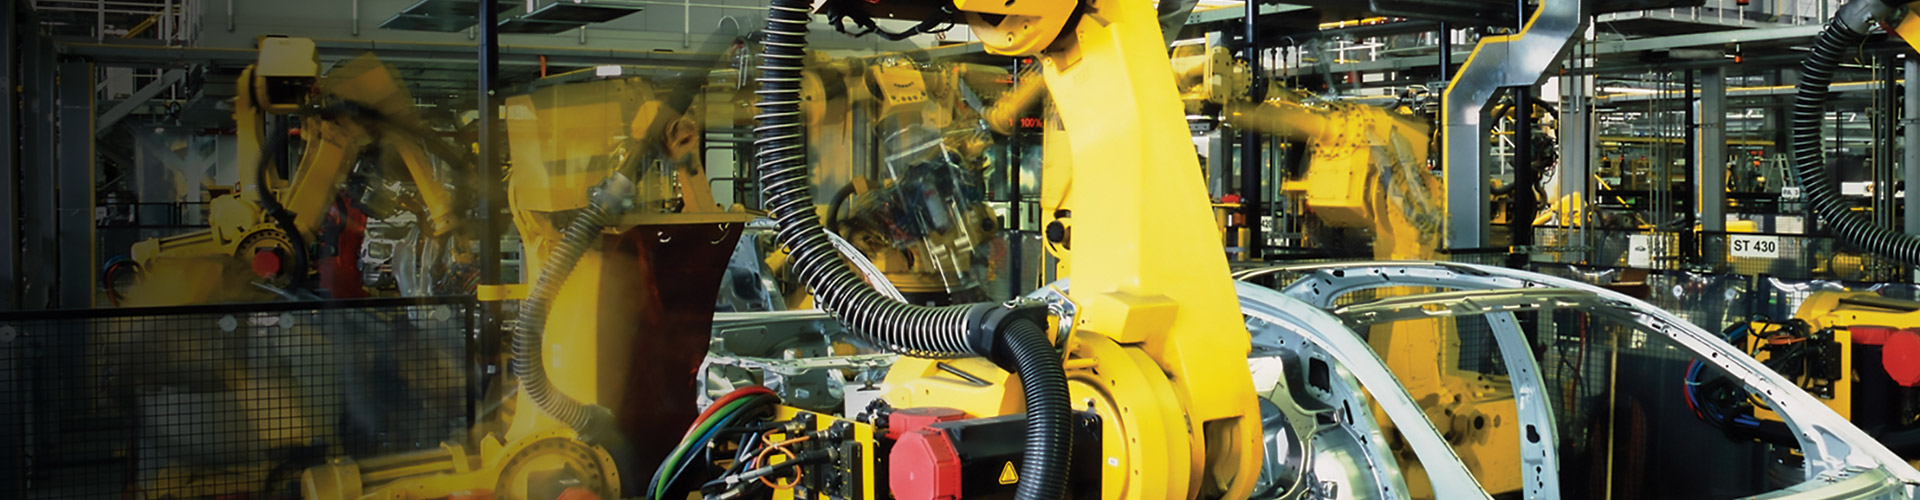 Industrial Robots Featured News Banner